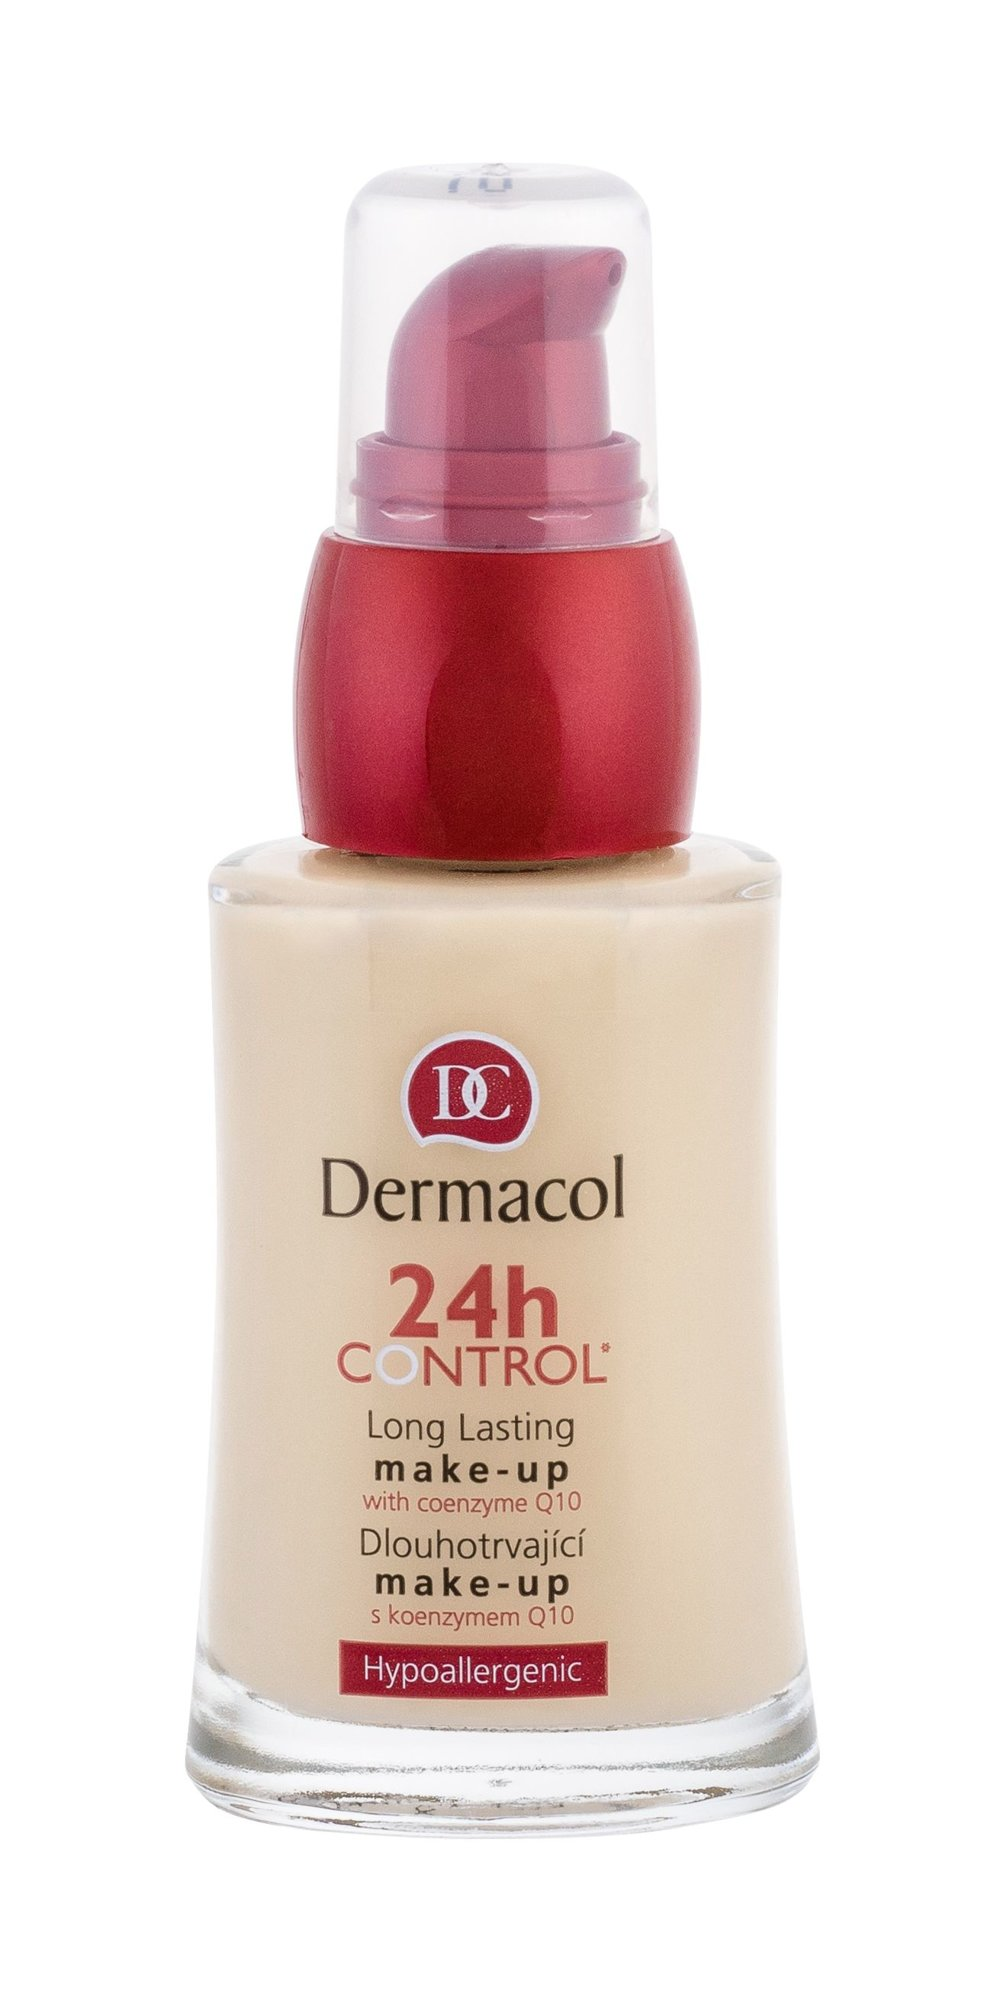 Dermacol 24h Control Makeup 30ml 70